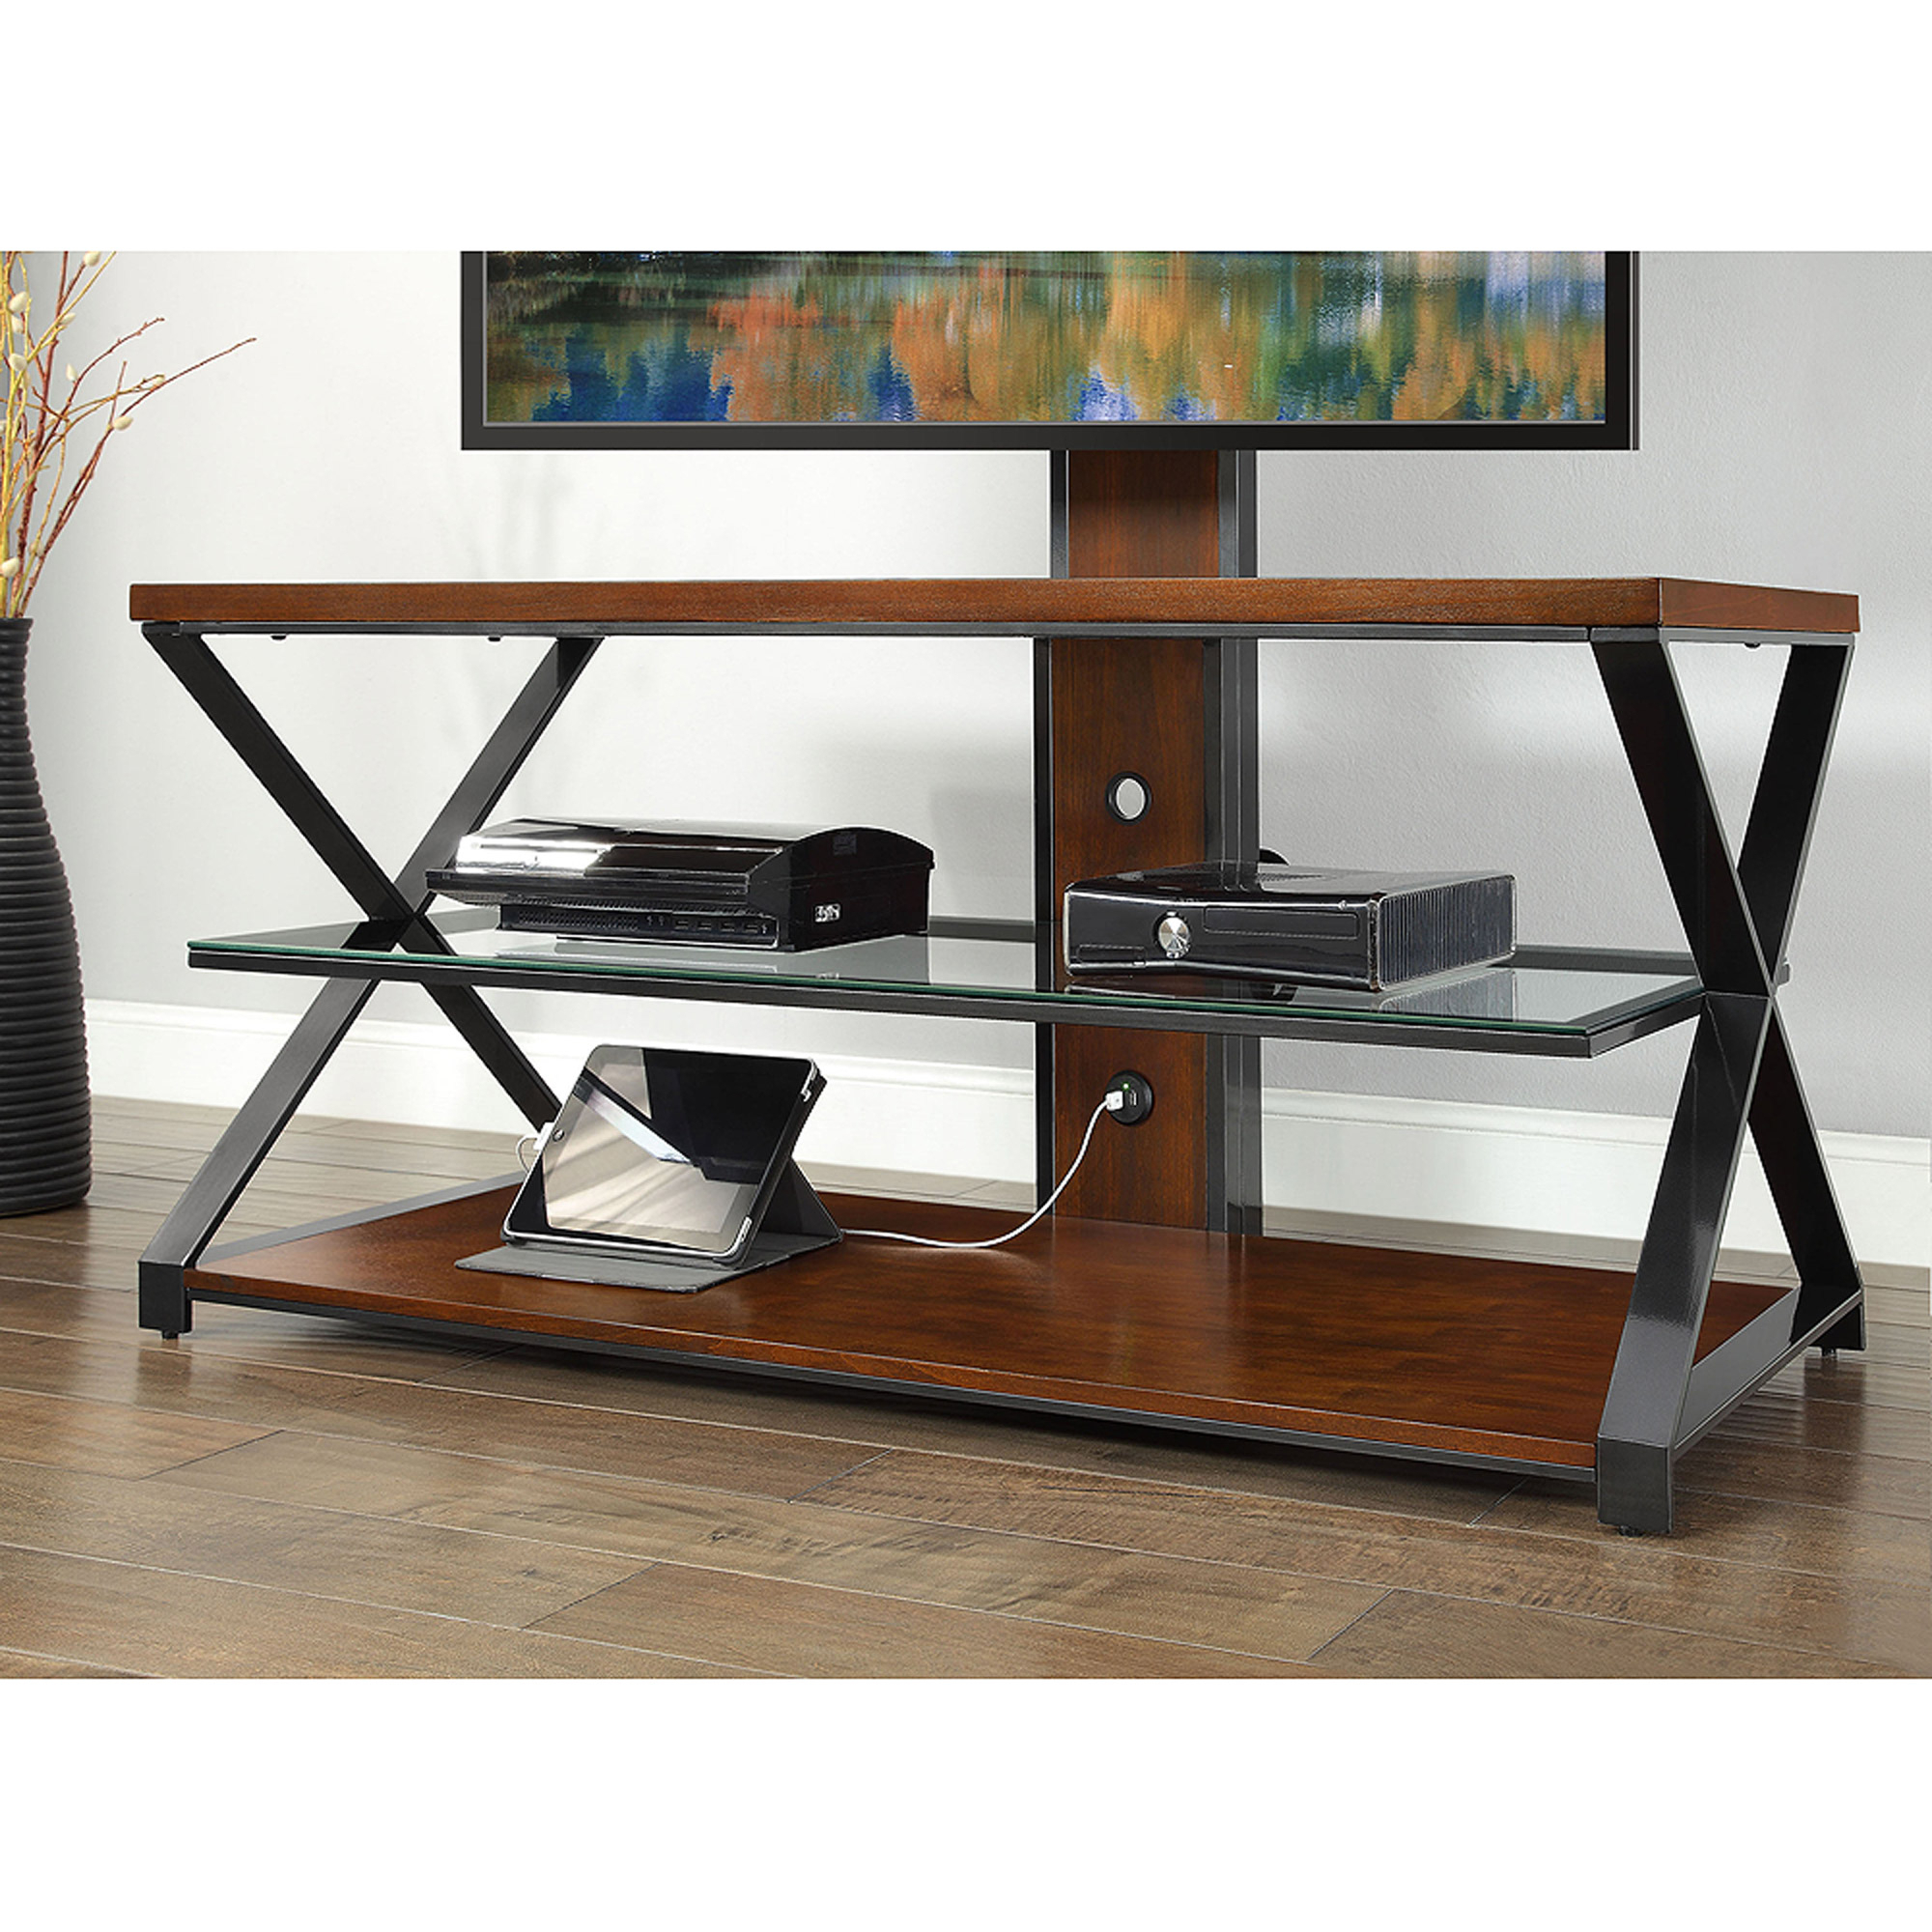 Sarah Tv Stands: Jaxon 3 In 1 Cognac Tv Stand For Tvs Up To 70'' Pertaining To Jaxon 65 Inch Tv Stands (View 6 of 20)